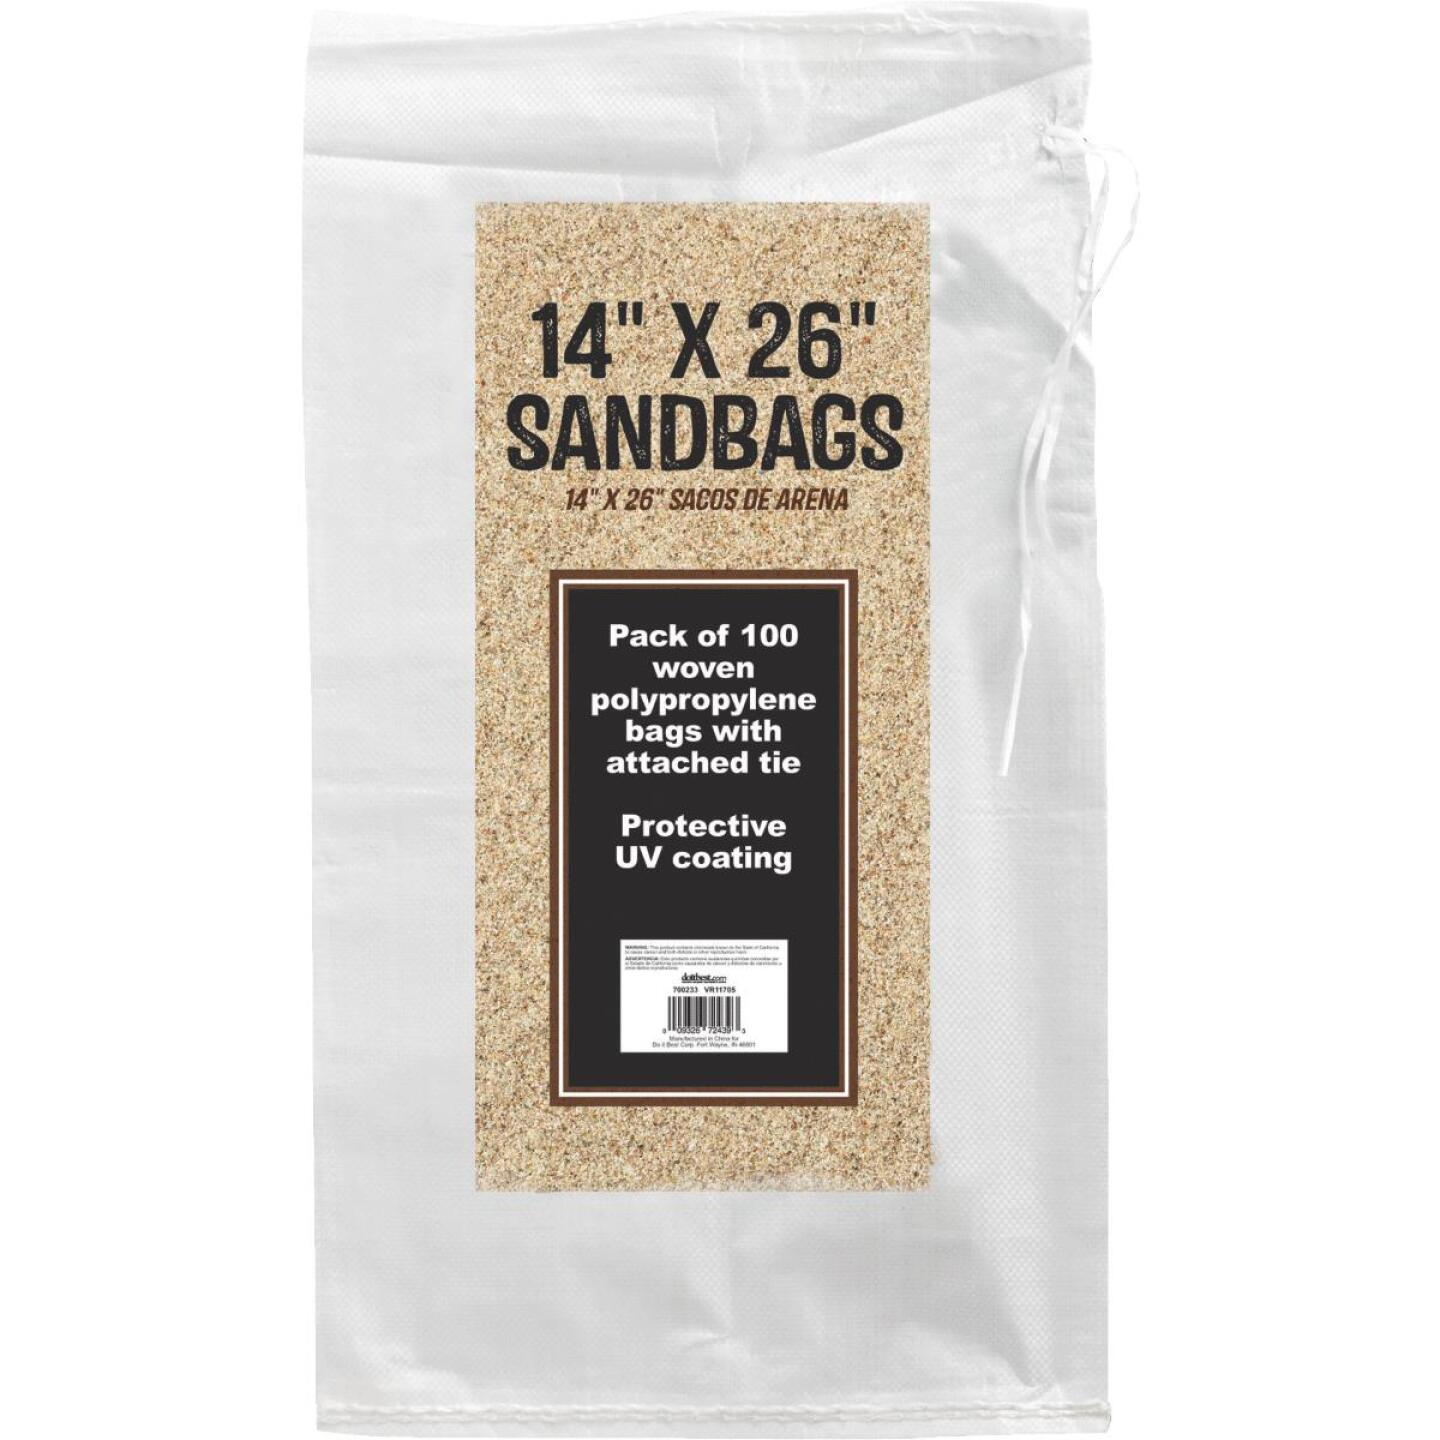 14 In. x 26 In. Empty Sandbags (100-Pack) Image 2